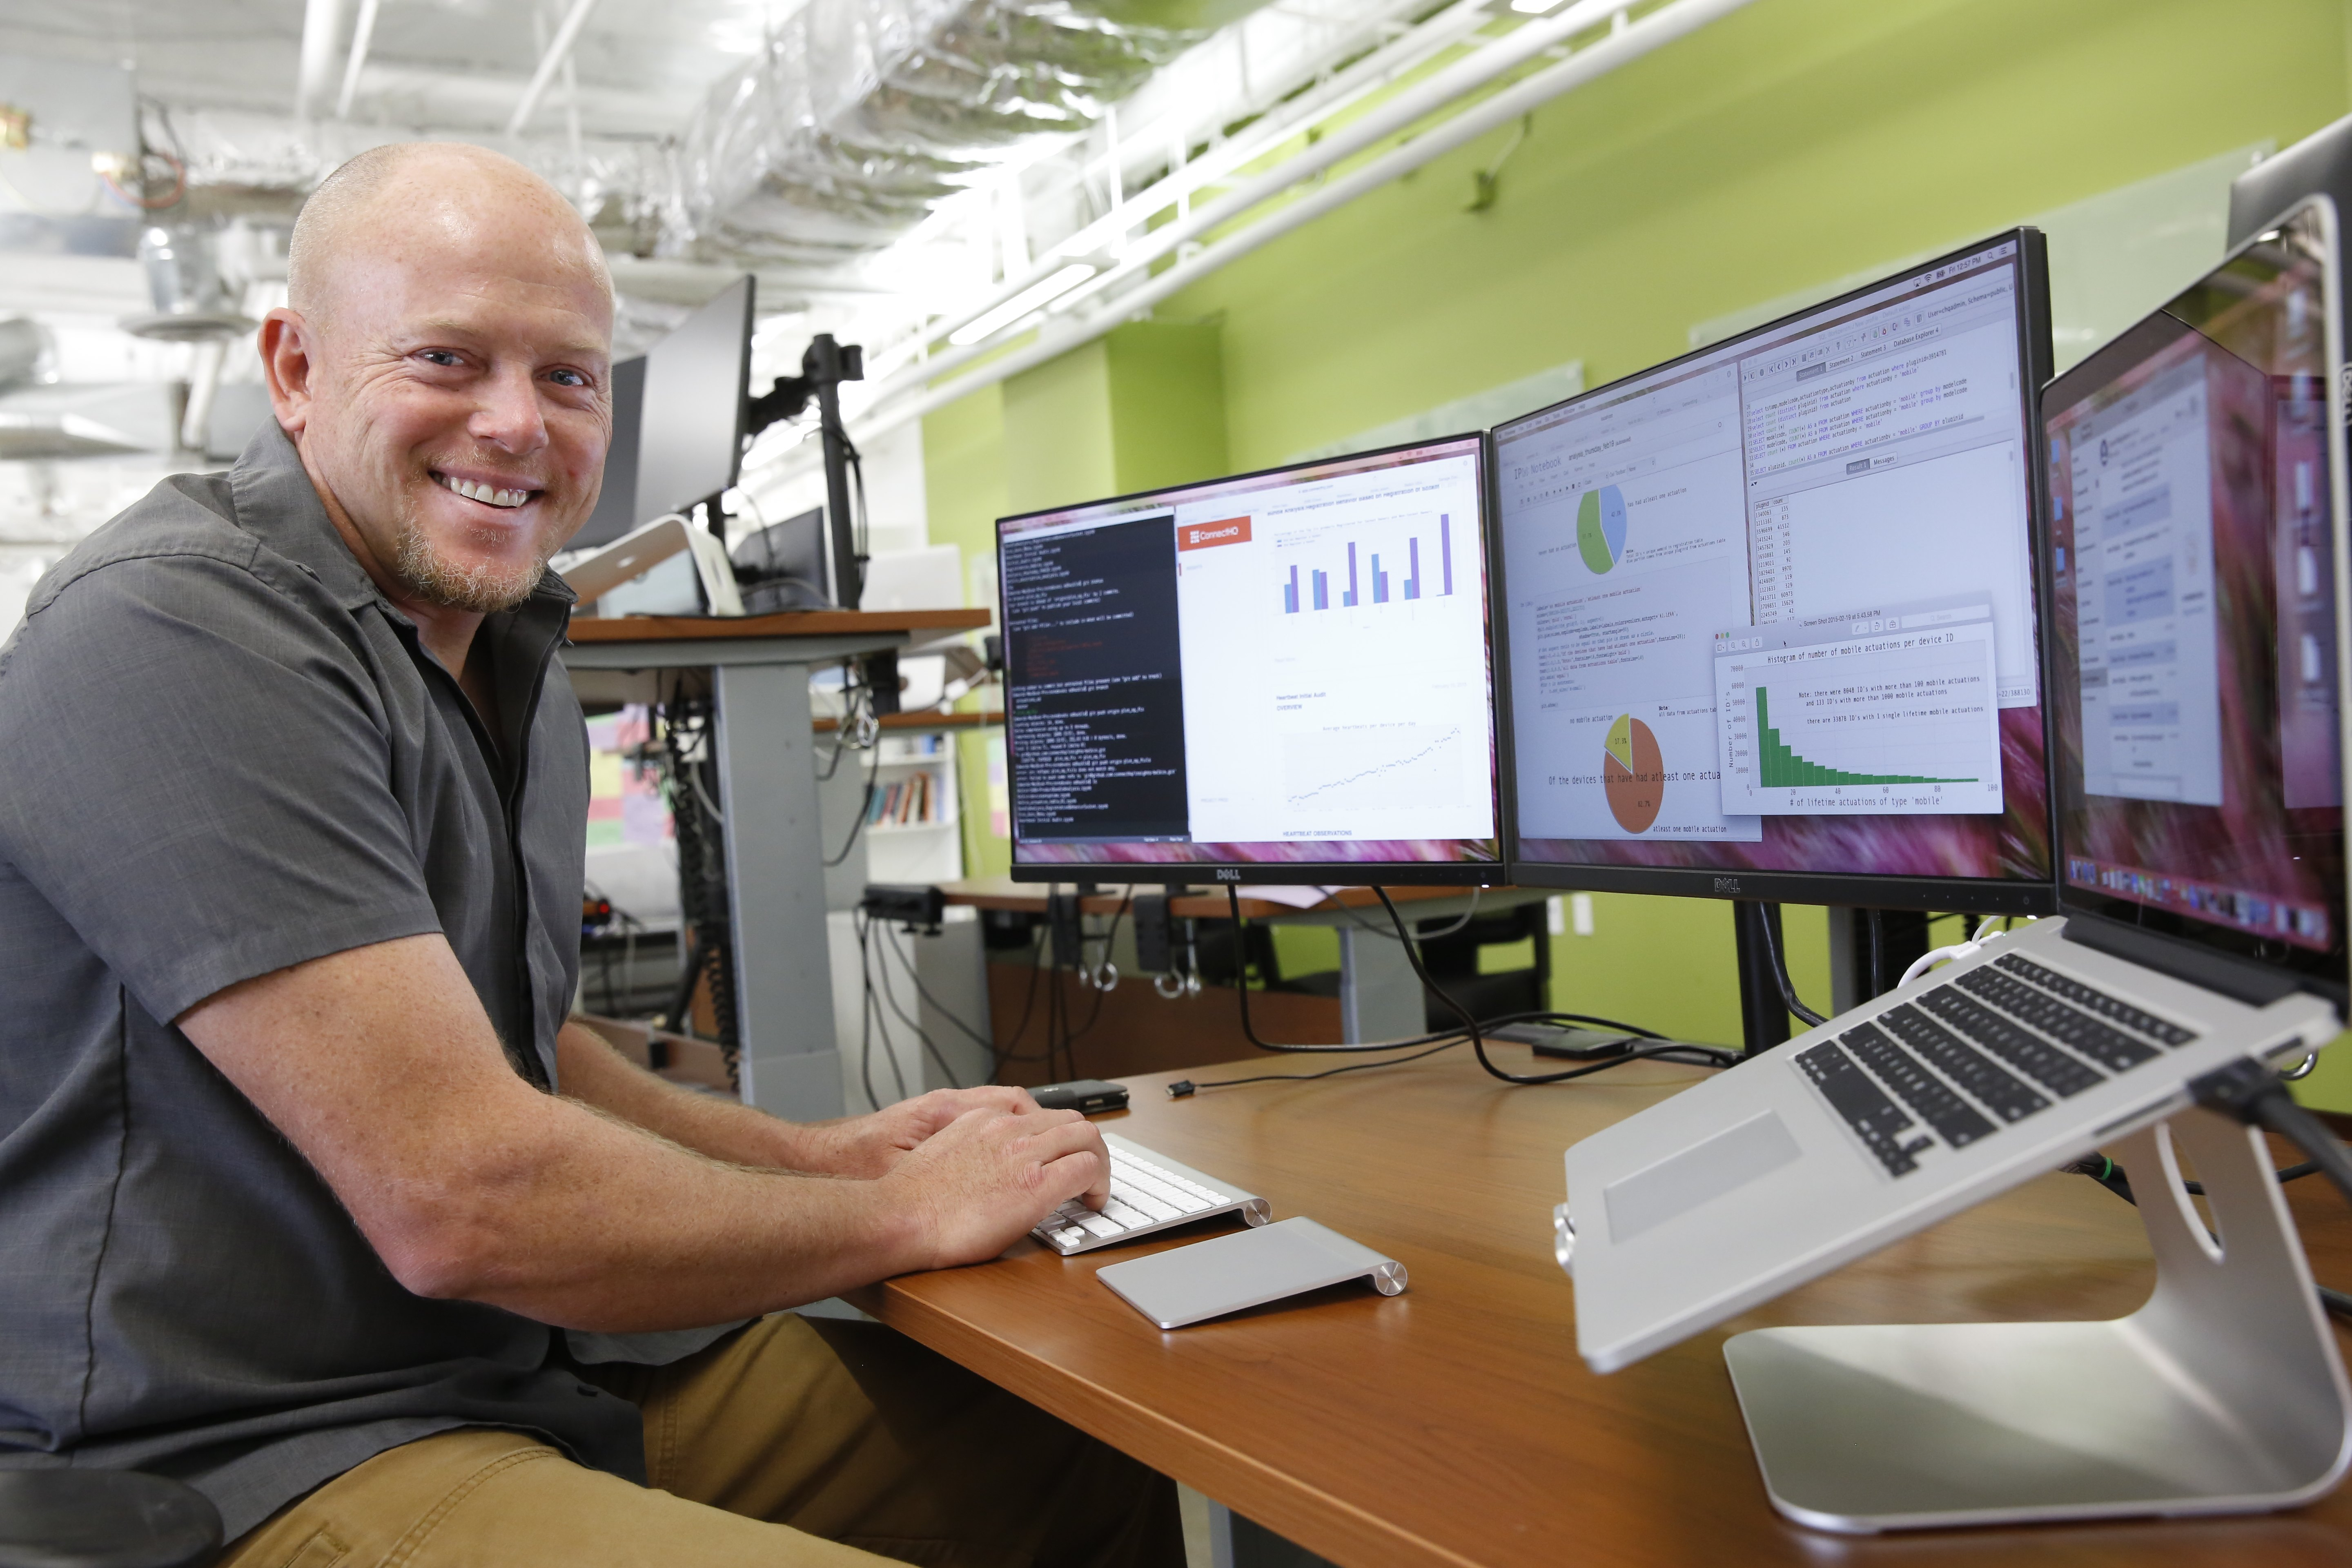 A data analyst working at DataScience.